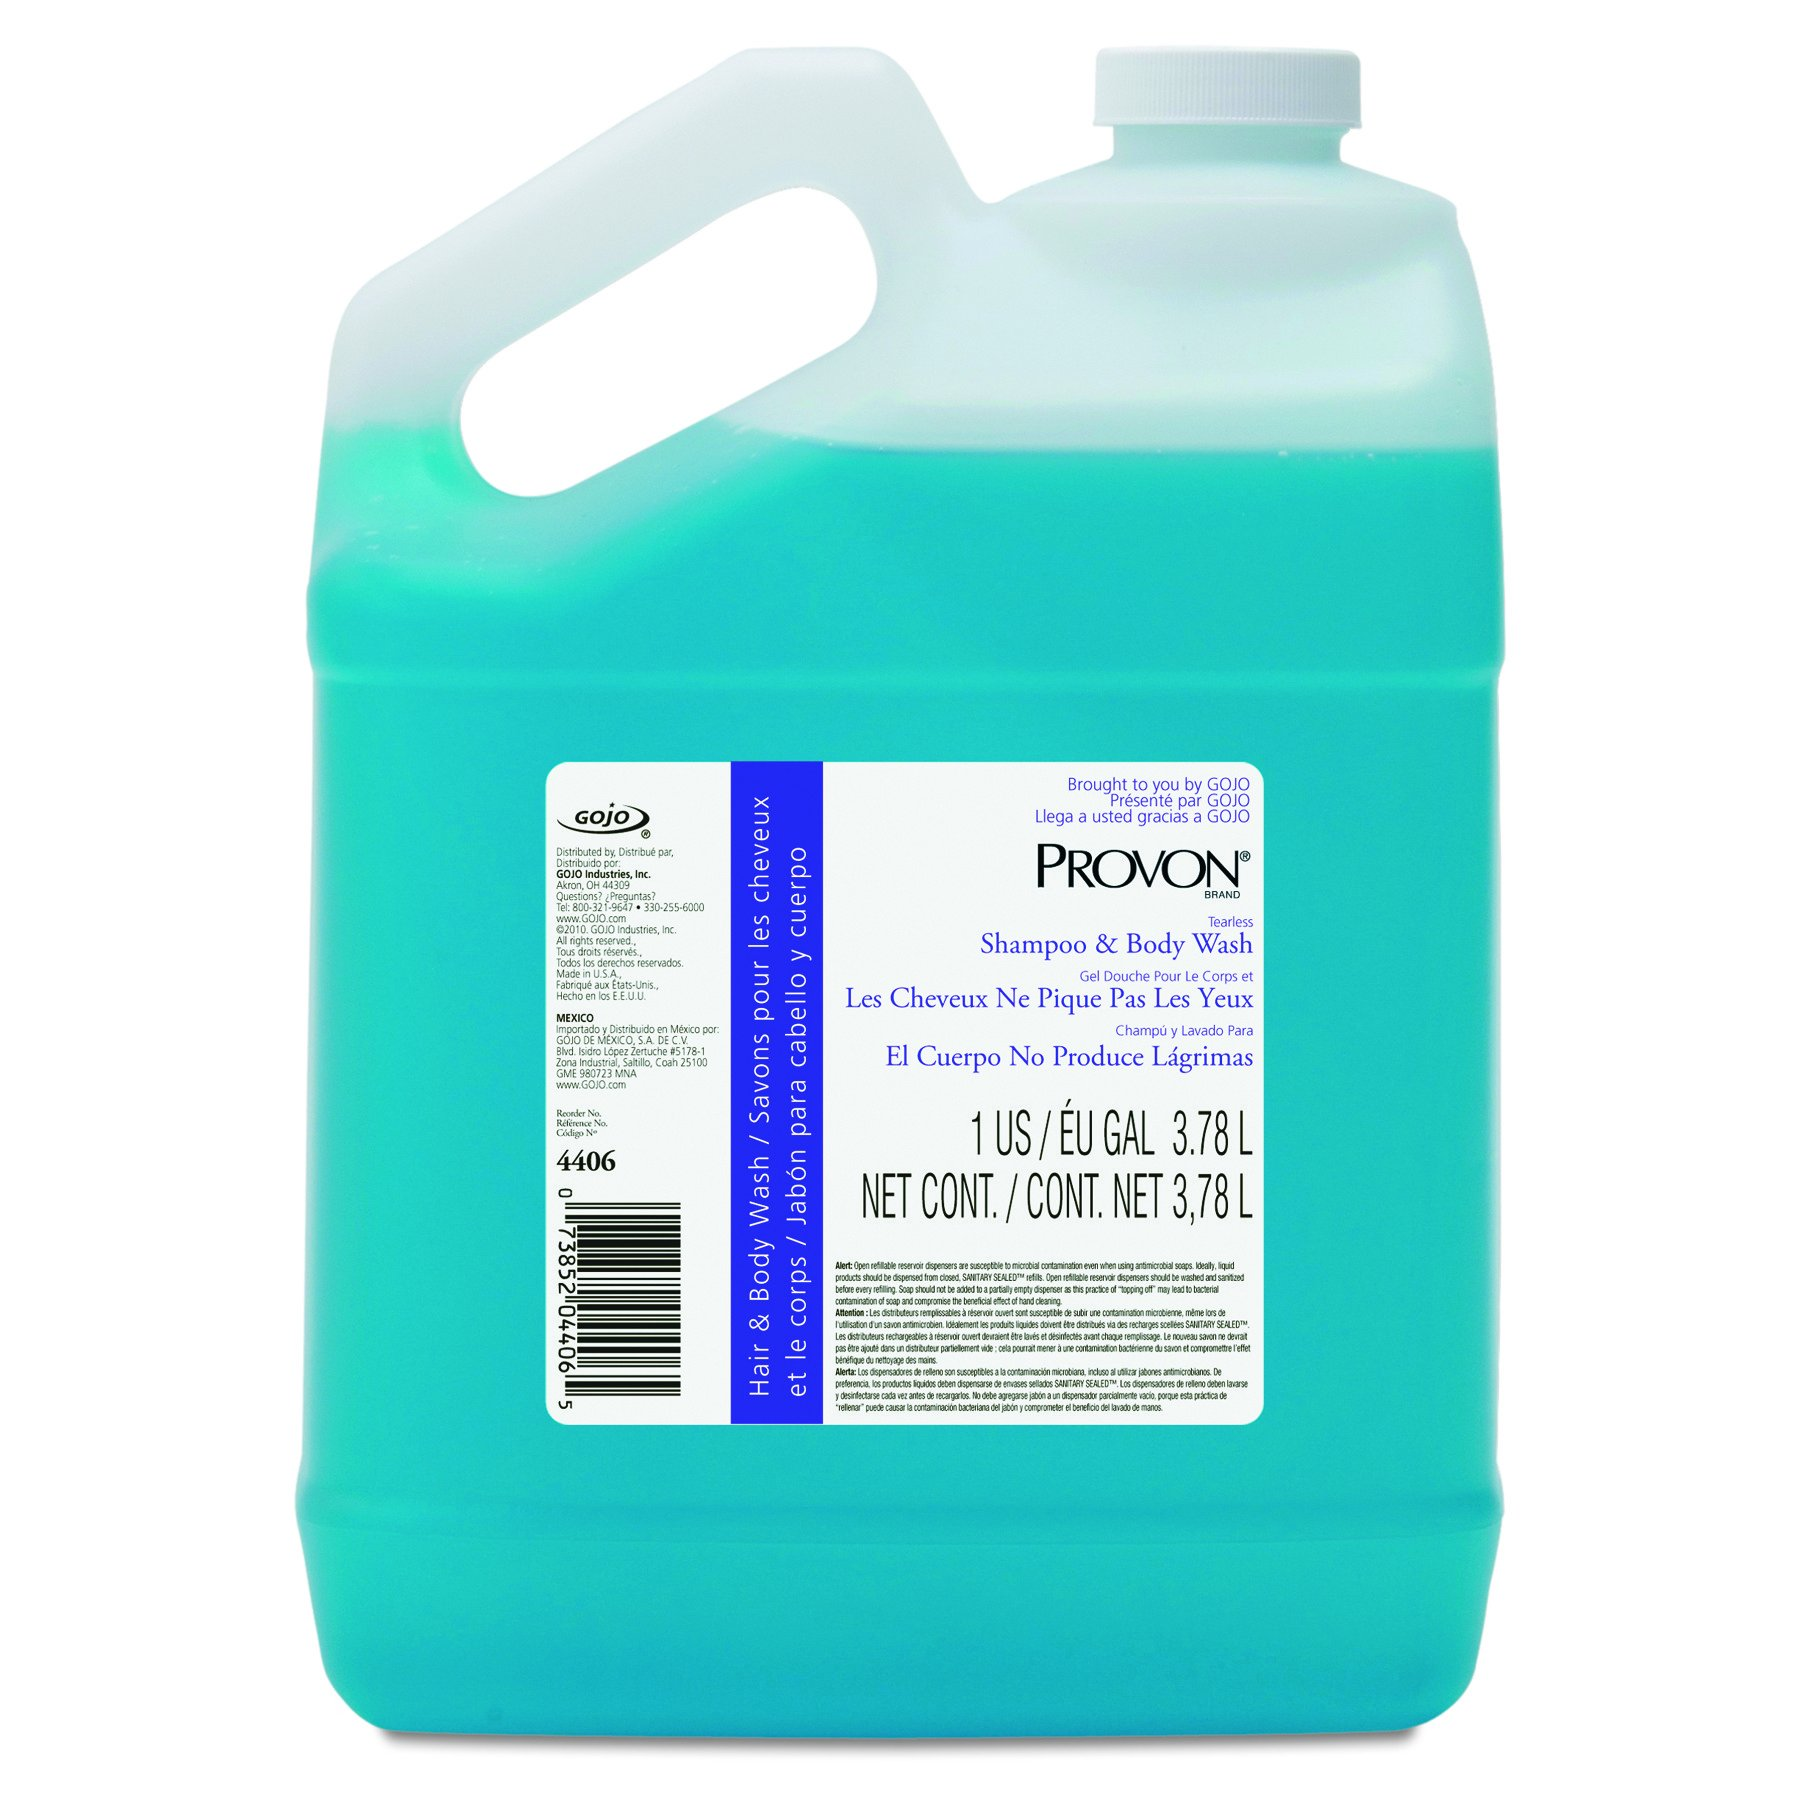 Provon 4406-04 Tearless Shampoo and Body Wash, 1 Gallon (Case of 4